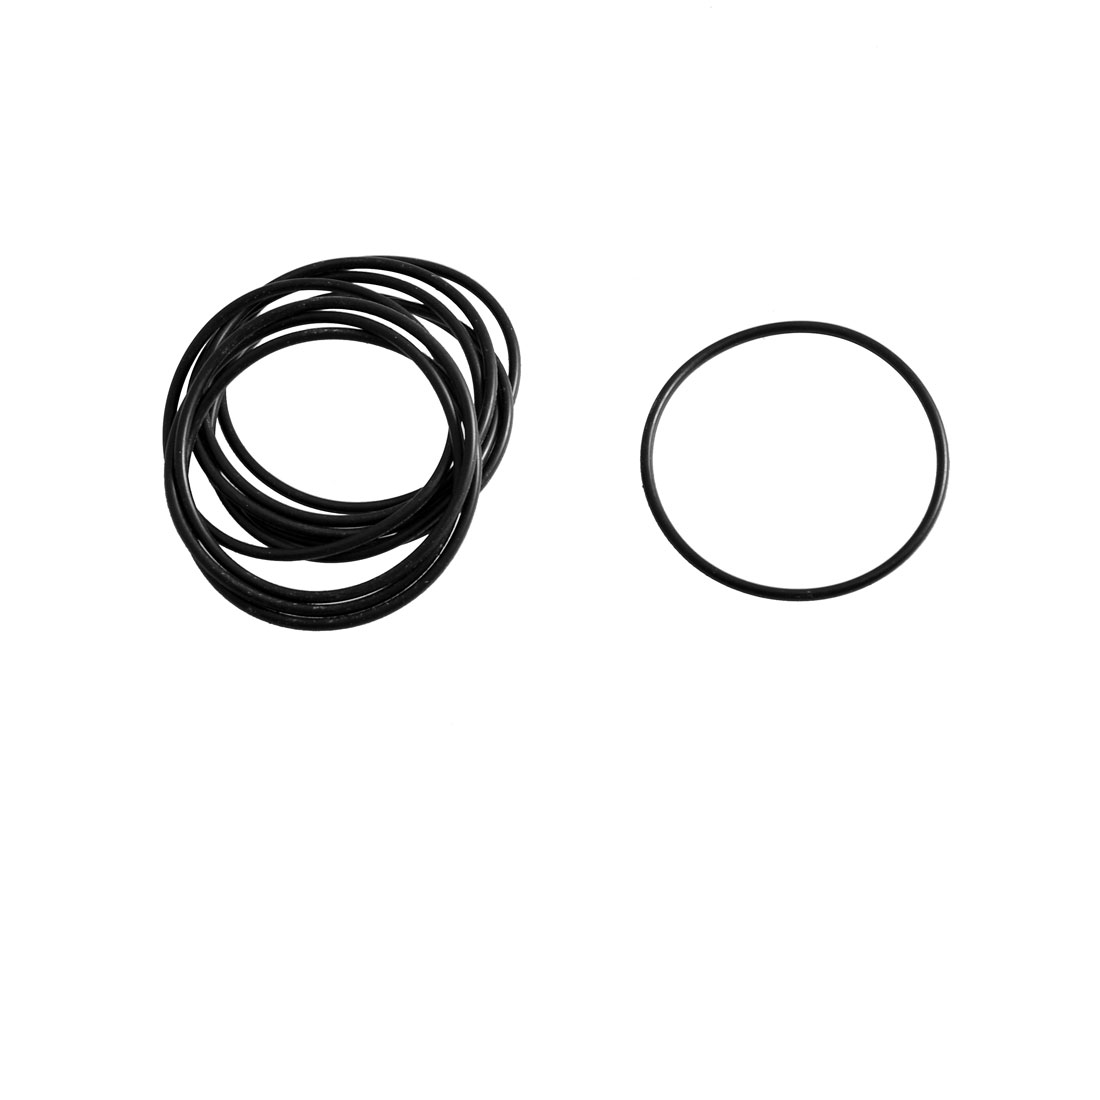 10 Pcs Black Rubber Oil Seal O Ring Gasket Washers 40mm x 1.8mm